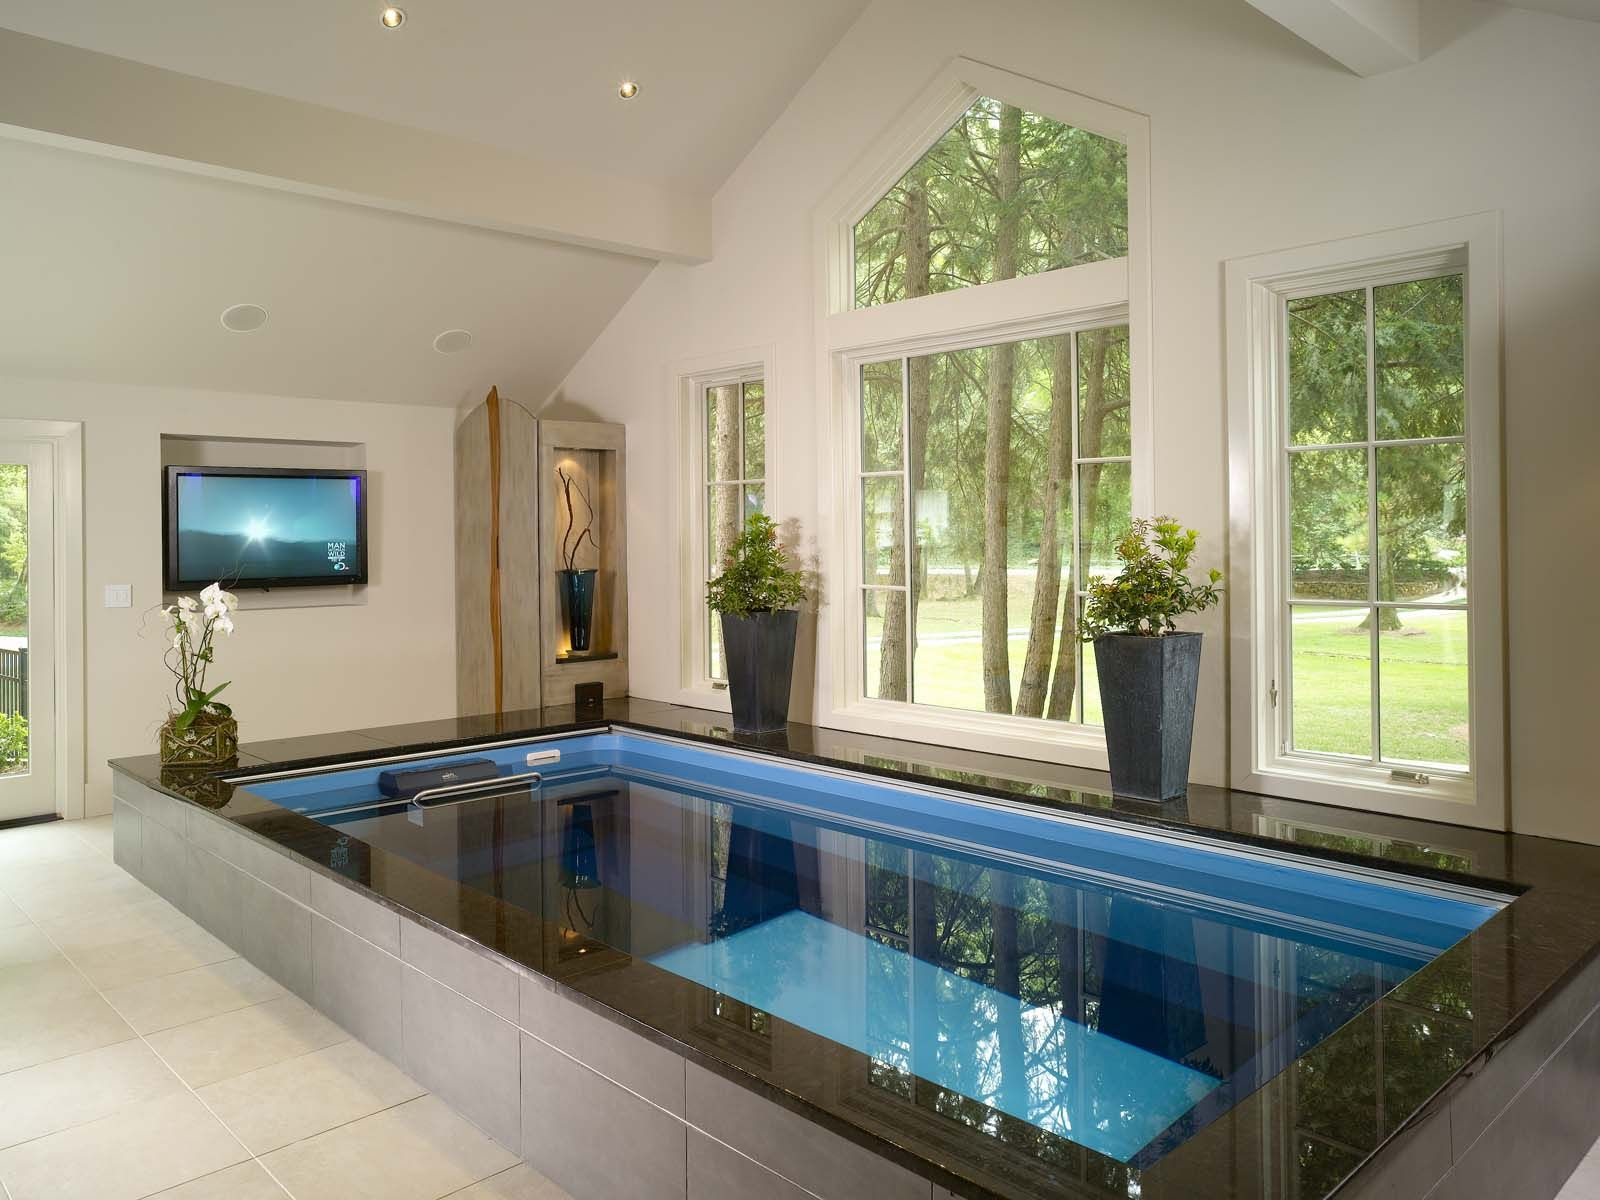 Best 25+ Indoor pools ideas on Pinterest | Indoor pools house, Dream pools  and Indoor pools near me